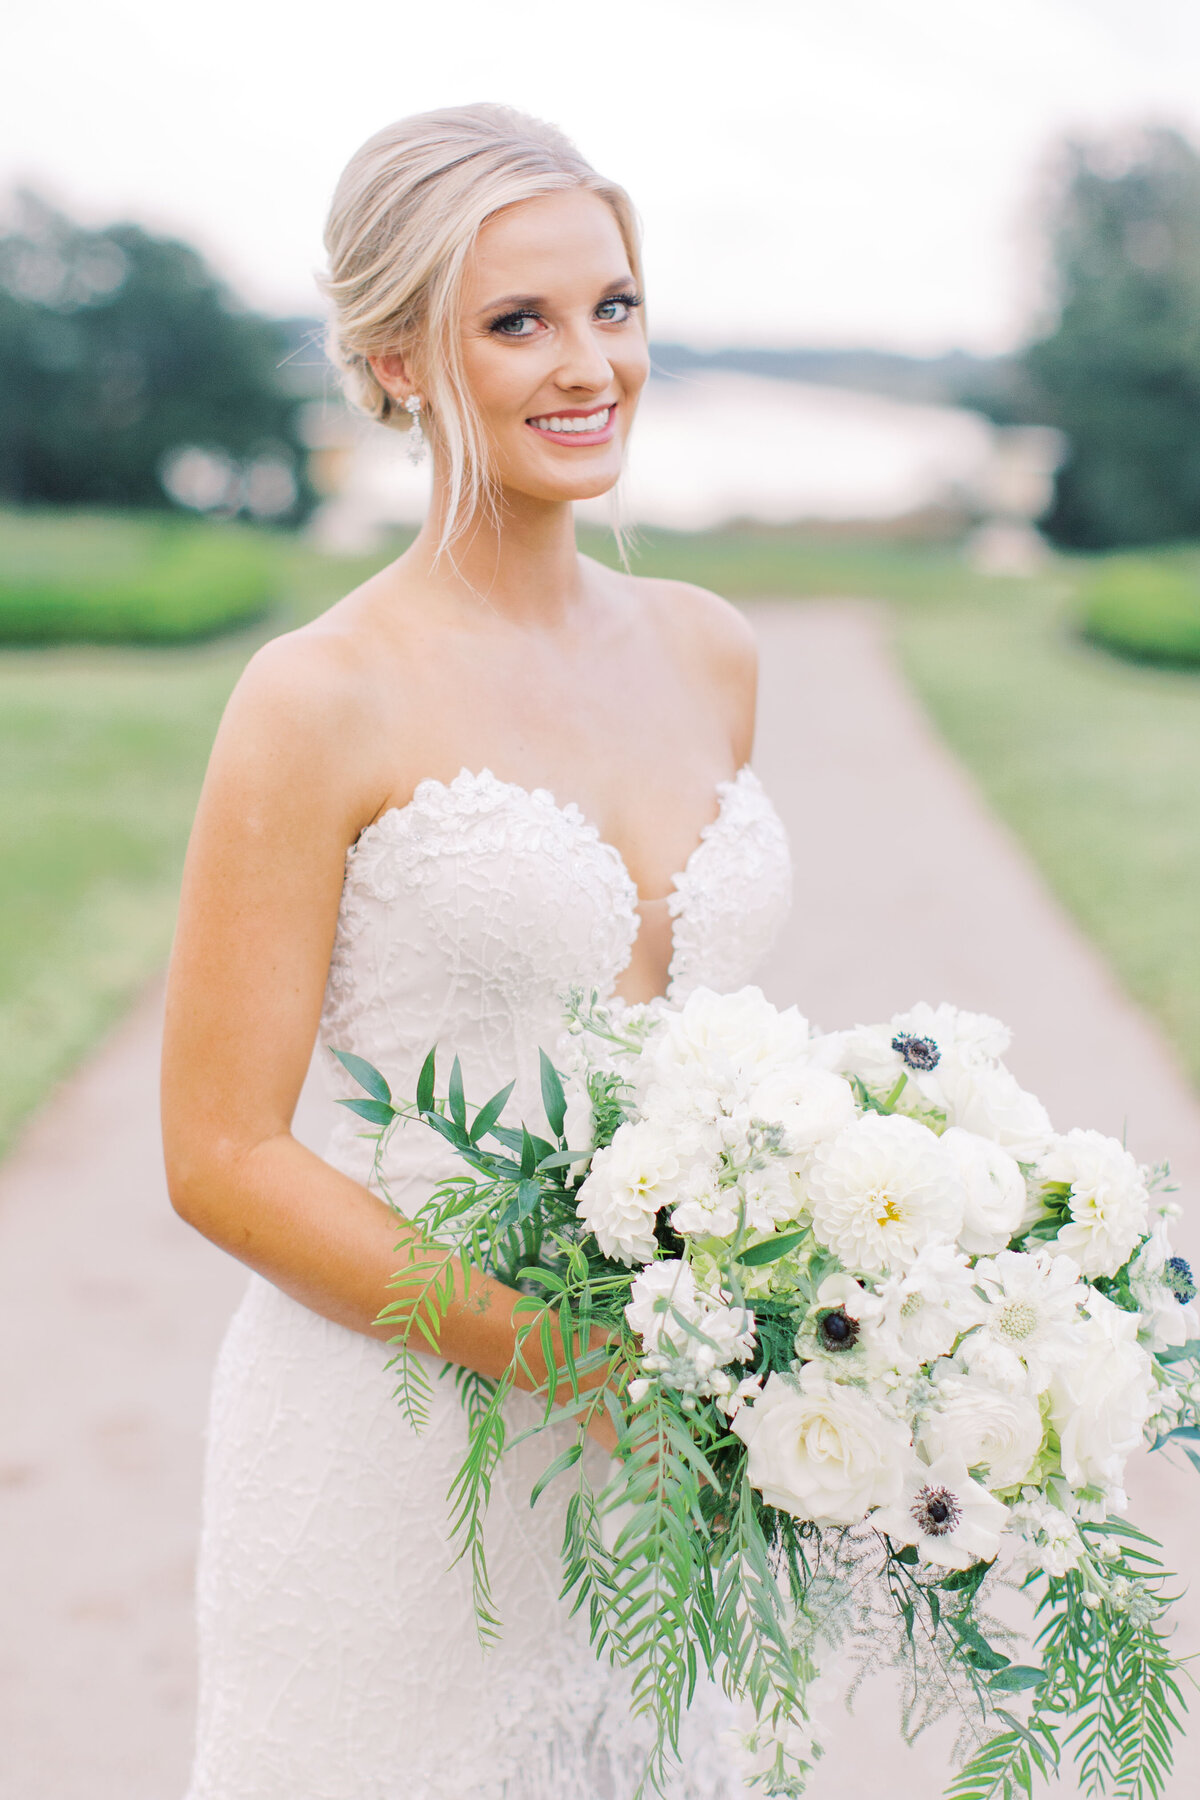 Melton_Wedding__Middleton_Place_Plantation_Charleston_South_Carolina_Jacksonville_Florida_Devon_Donnahoo_Photography__0313